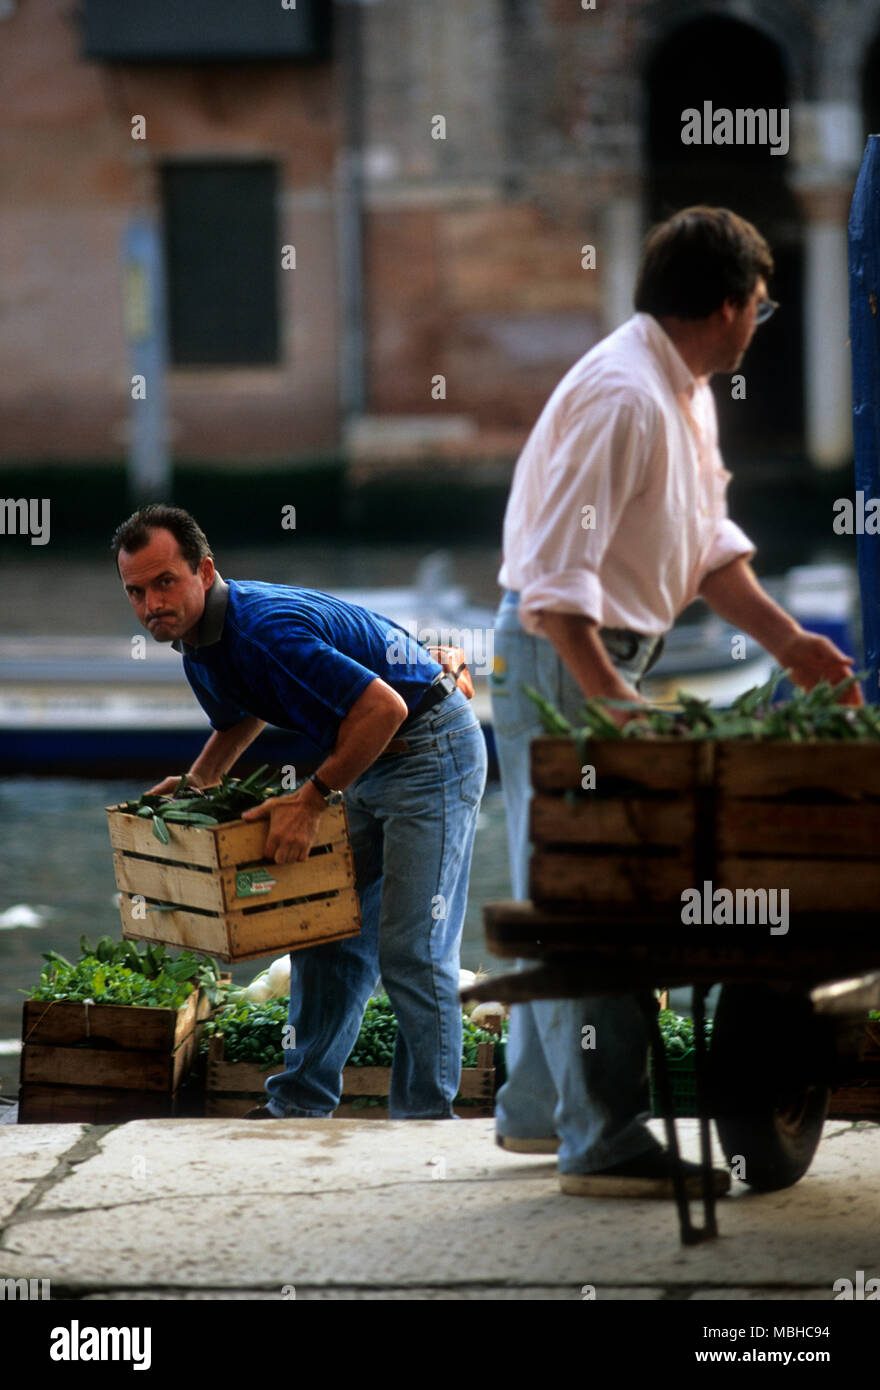 Italy Food Film Stock Photos Images Alamy Zipora Black Jeans Unloading Produce At The Rialto Markets Image